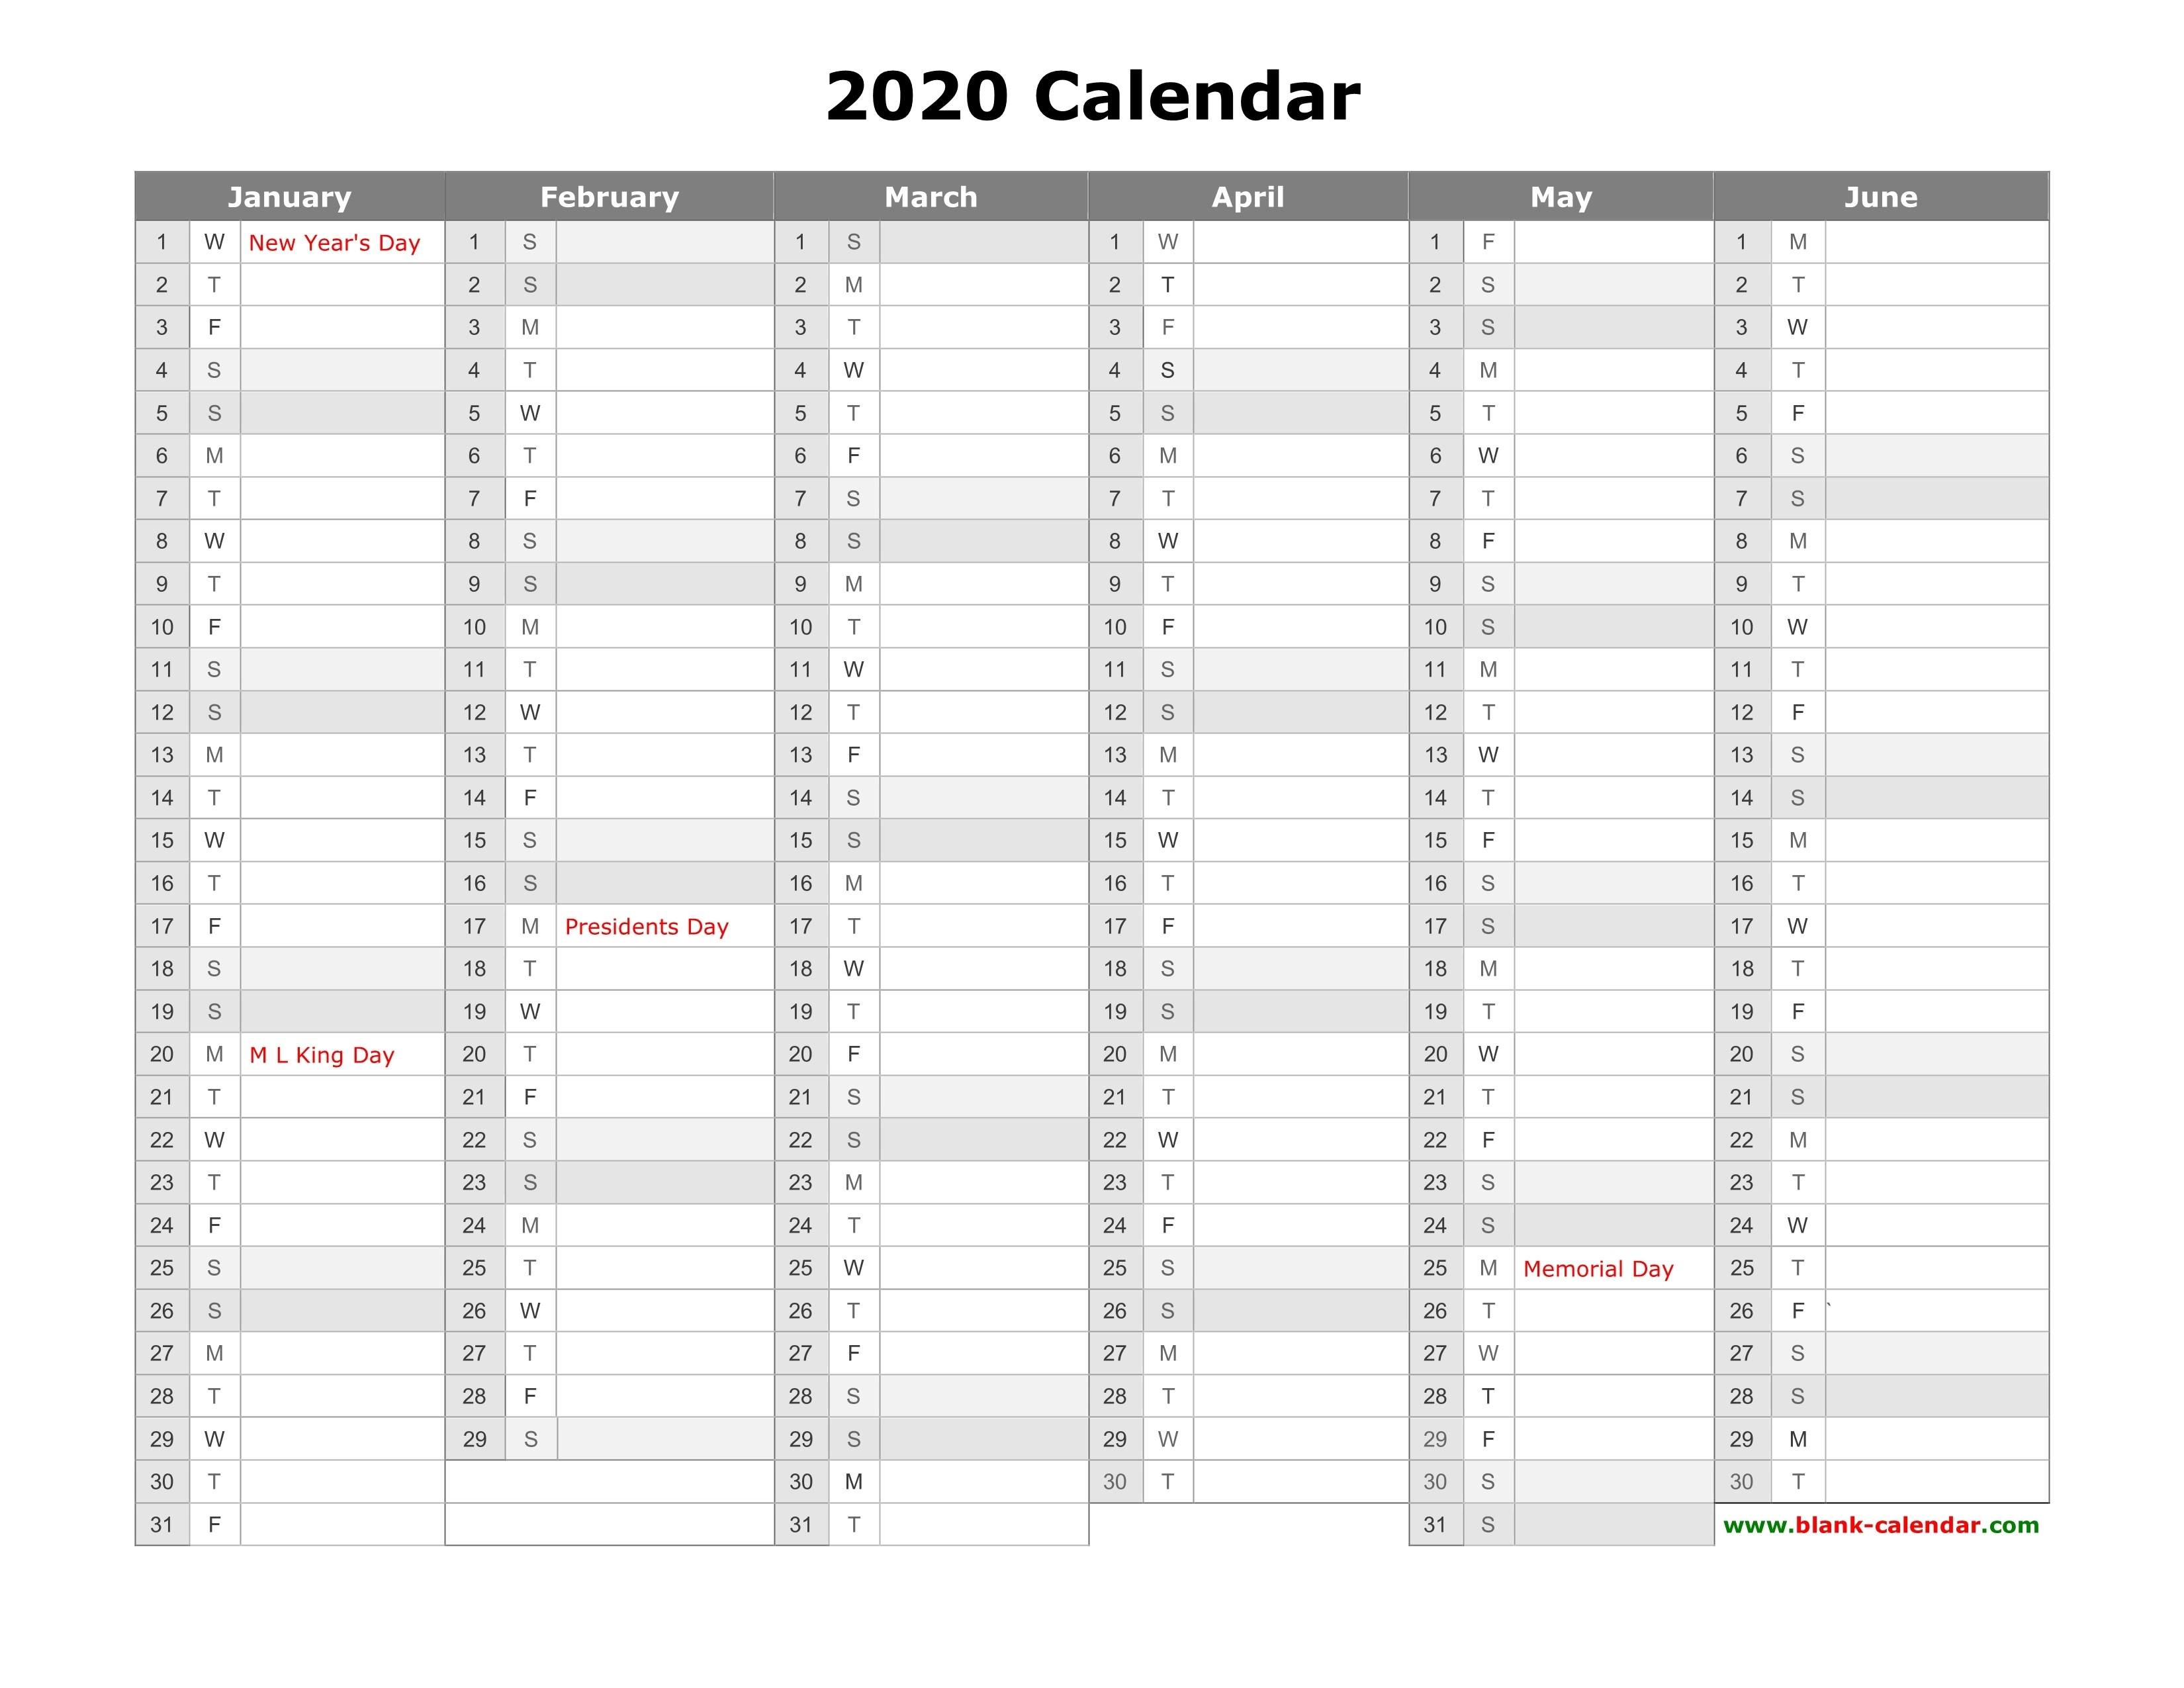 Free Download Printable Calendar 2020, Month In A Column-Blank Printable Calandes With 2 Months On A Page Year 2020